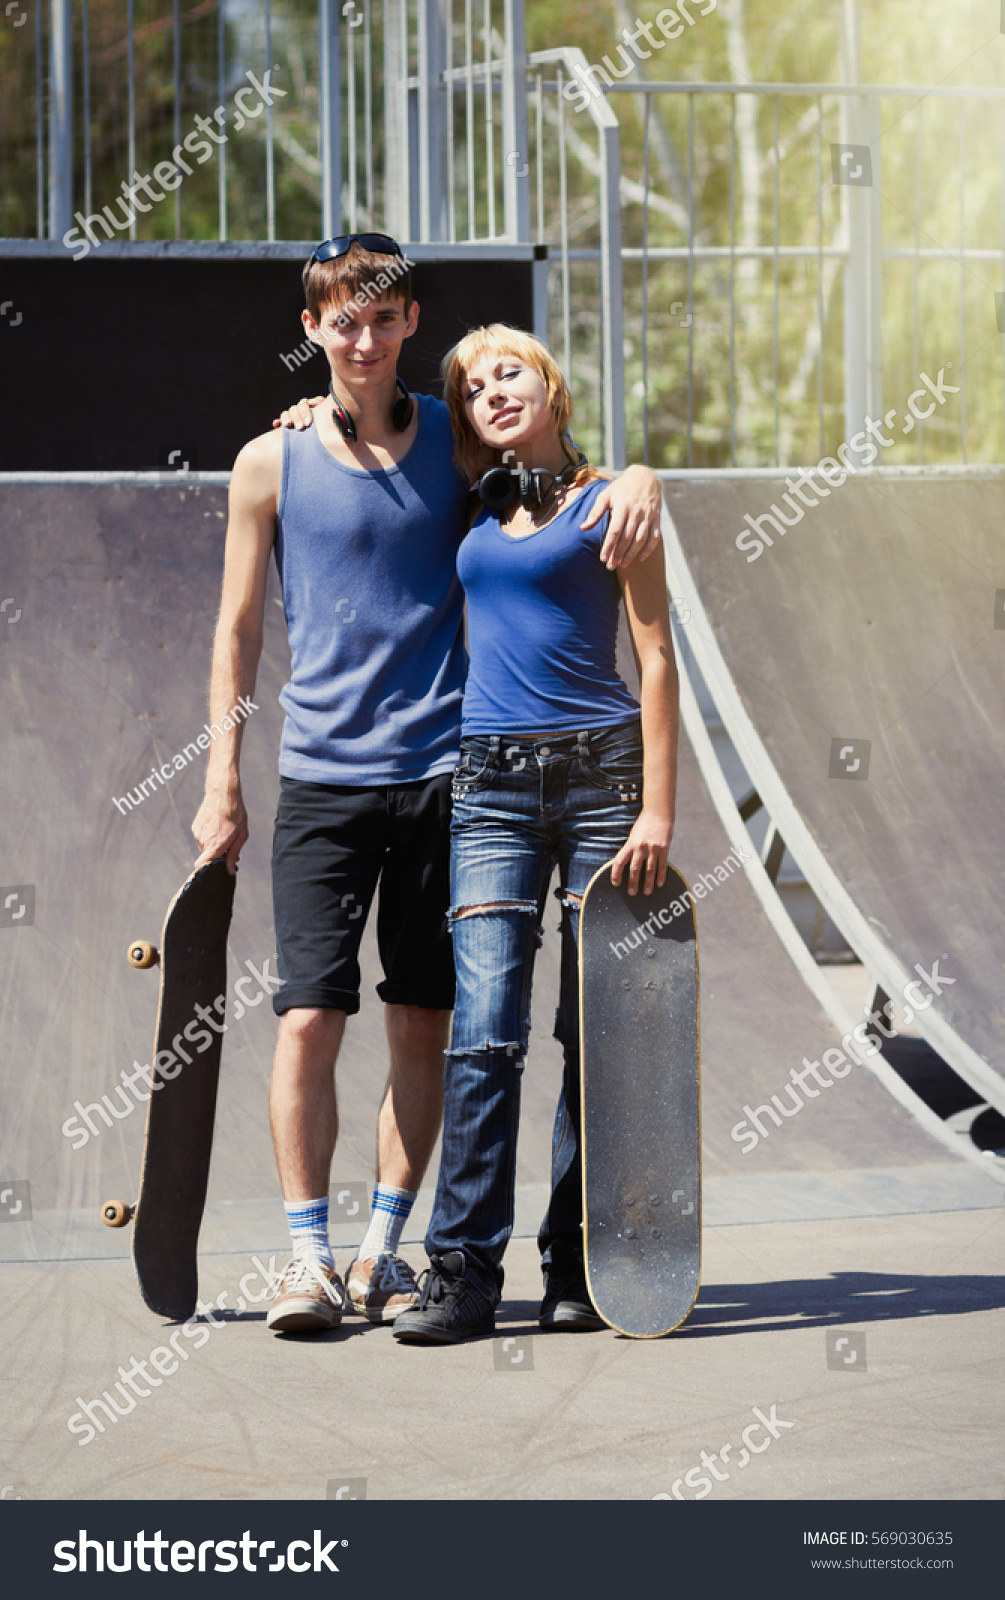 25a30e8b32 Young skater boy   girl embracing outdoor in bright sunny summer  day.Skaters with skate boards posing in park outdoor.Active youth.